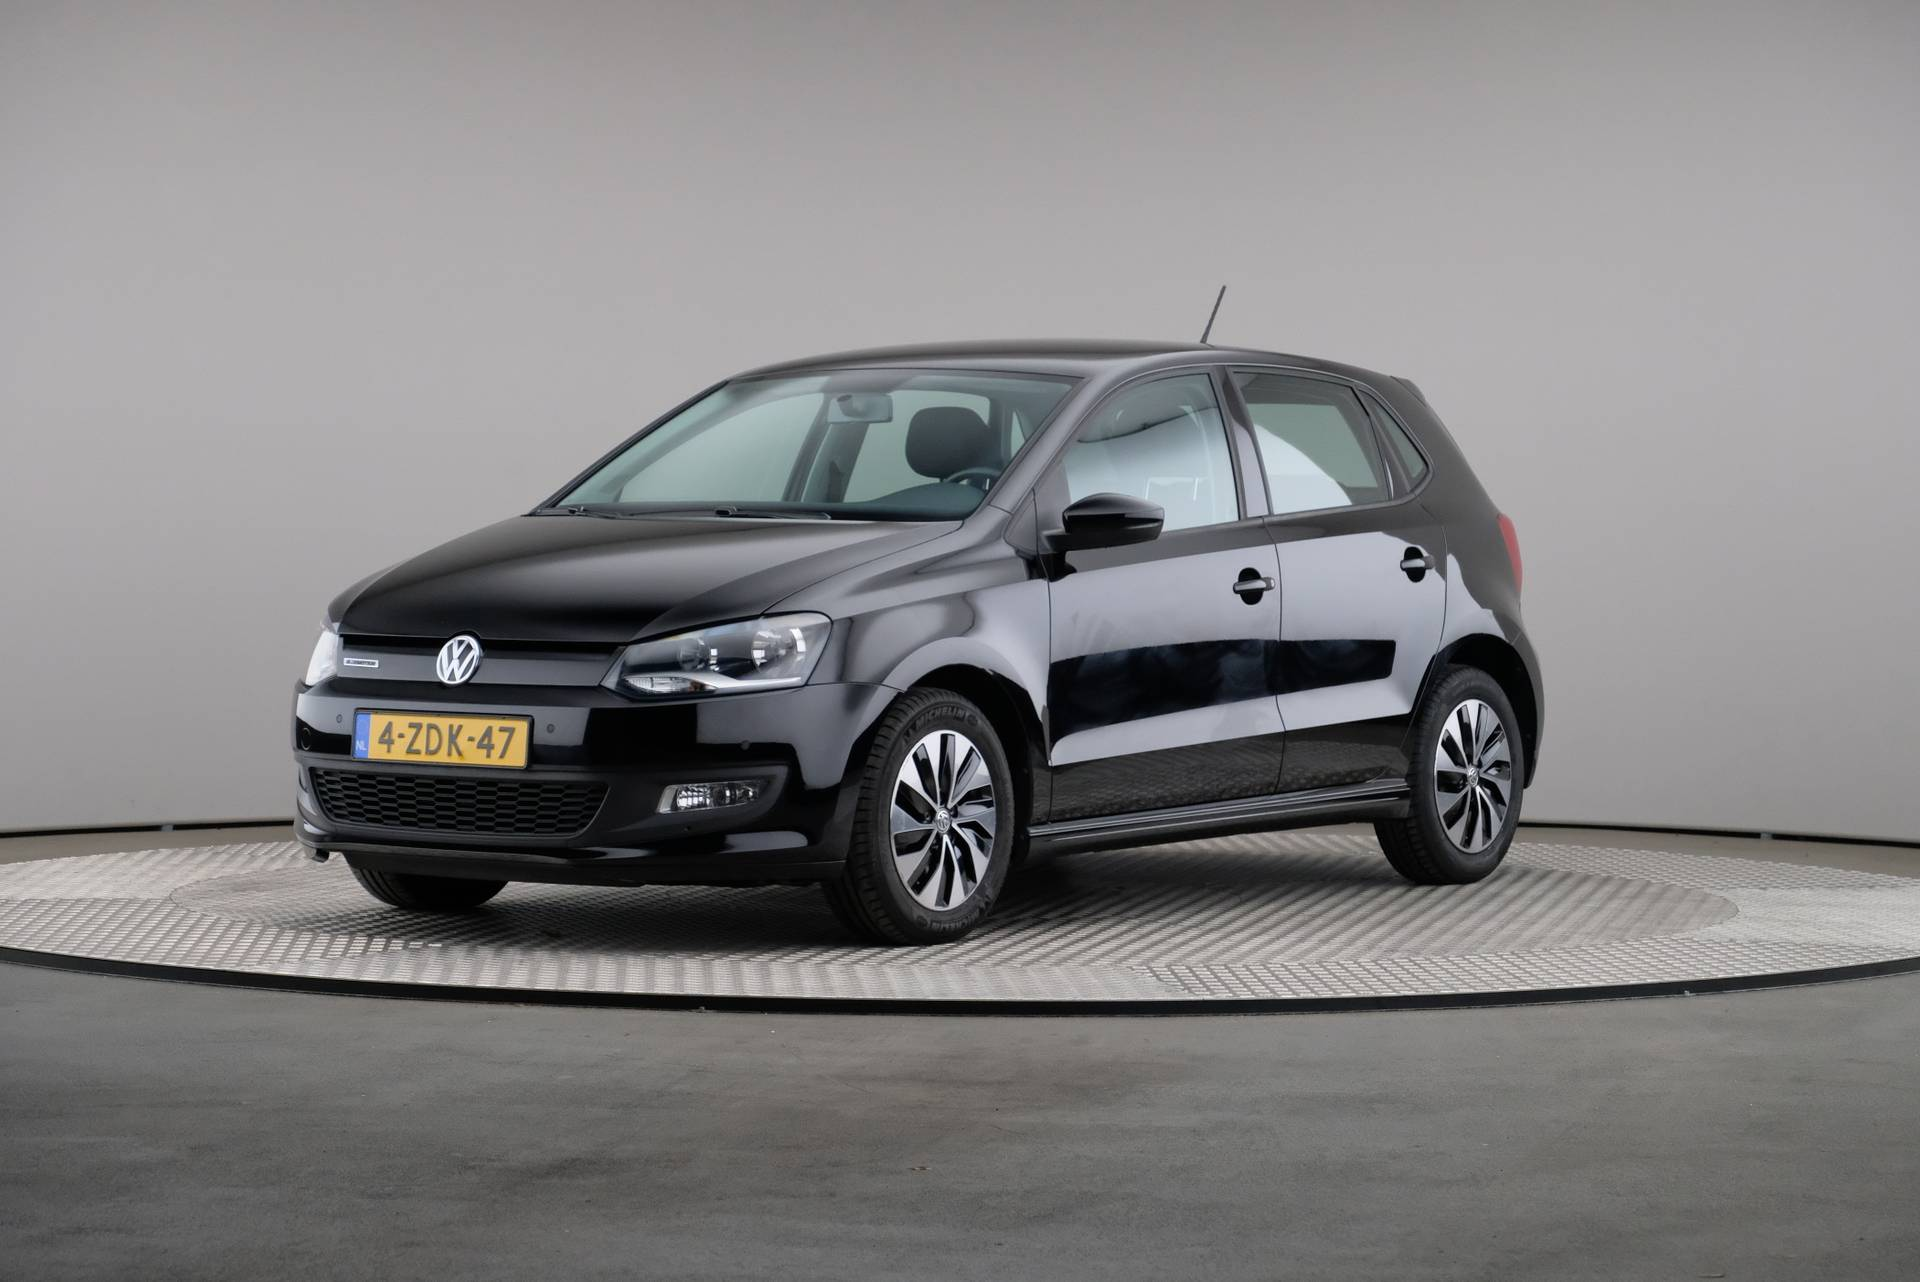 Volkswagen Polo 1.4 TDI BlueMotion Executive plus, Navigatie, 360-image0